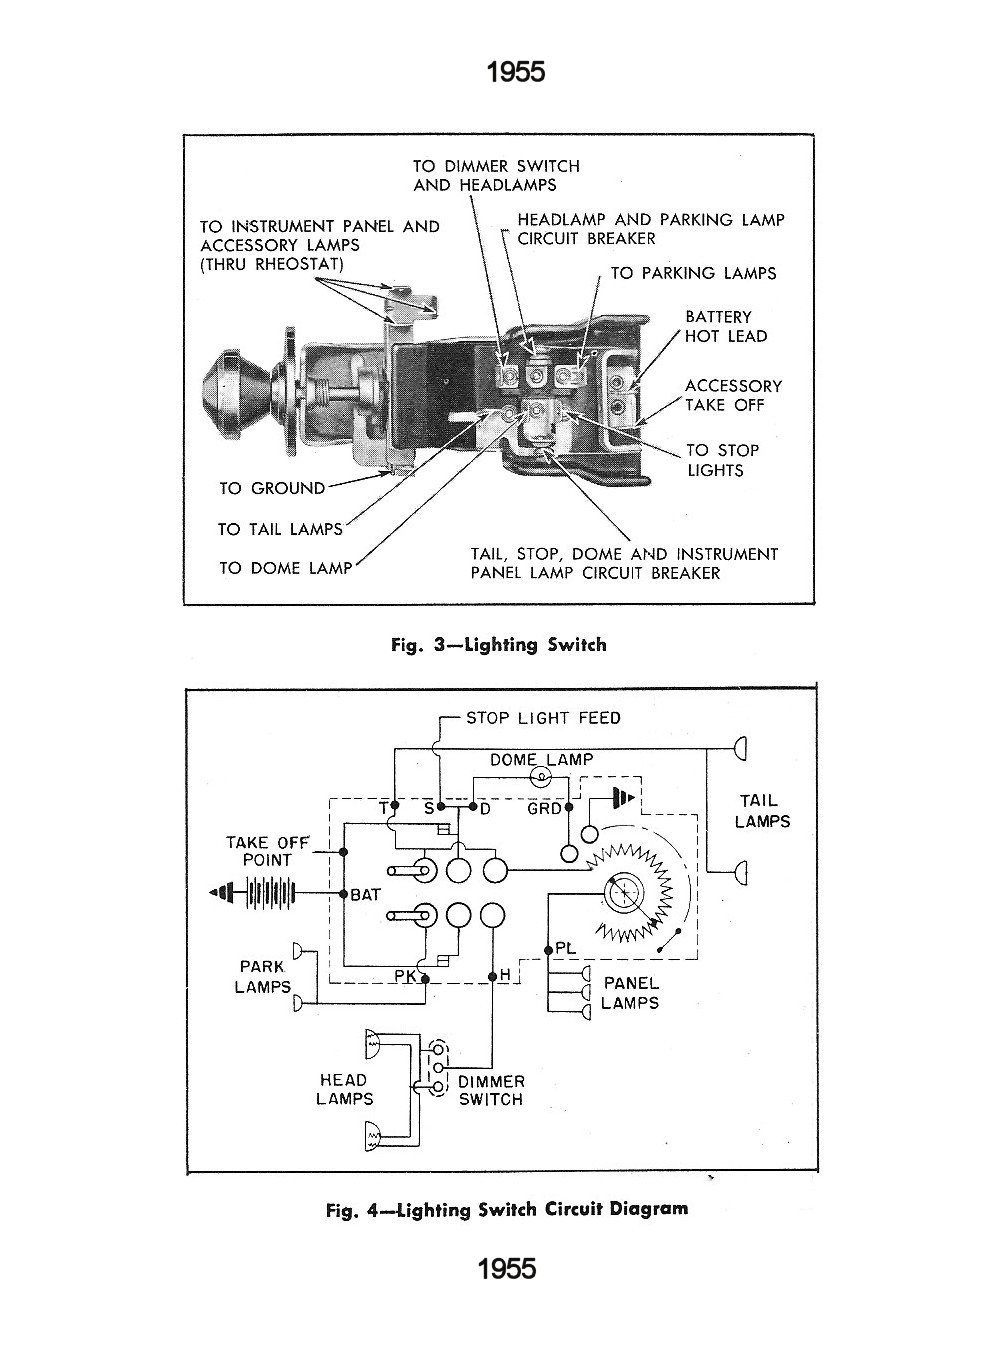 55csm1204a chevy wiring diagrams Chevy Brake Light Switch Wiring Diagram at reclaimingppi.co